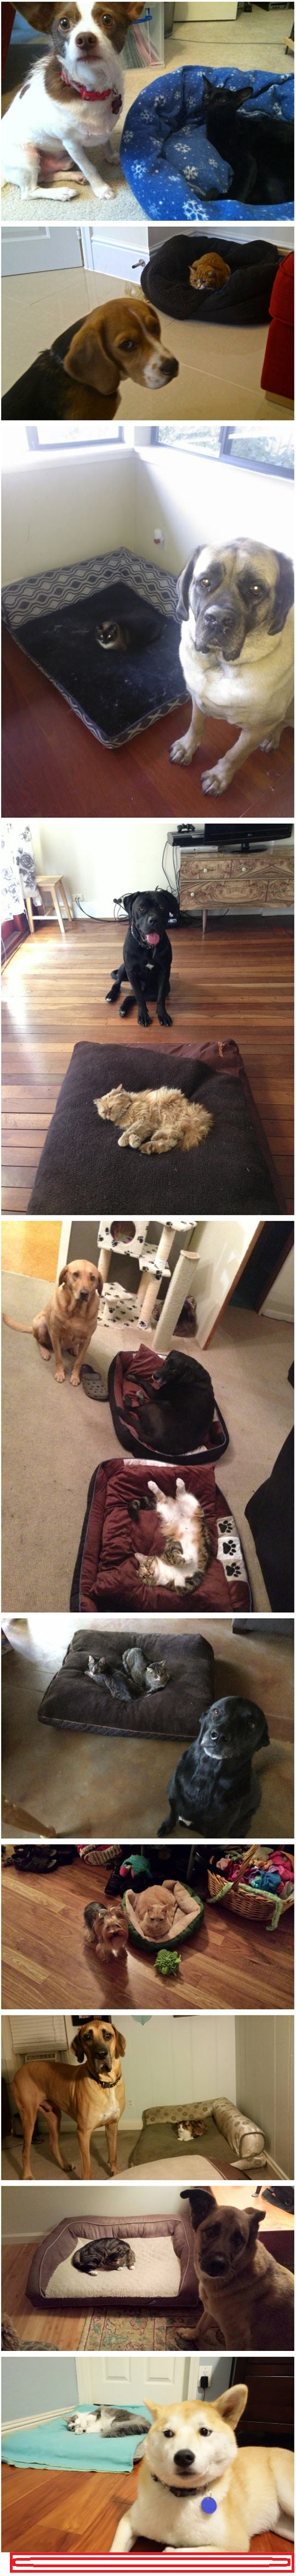 funny-cats-stealing-beds-dogs